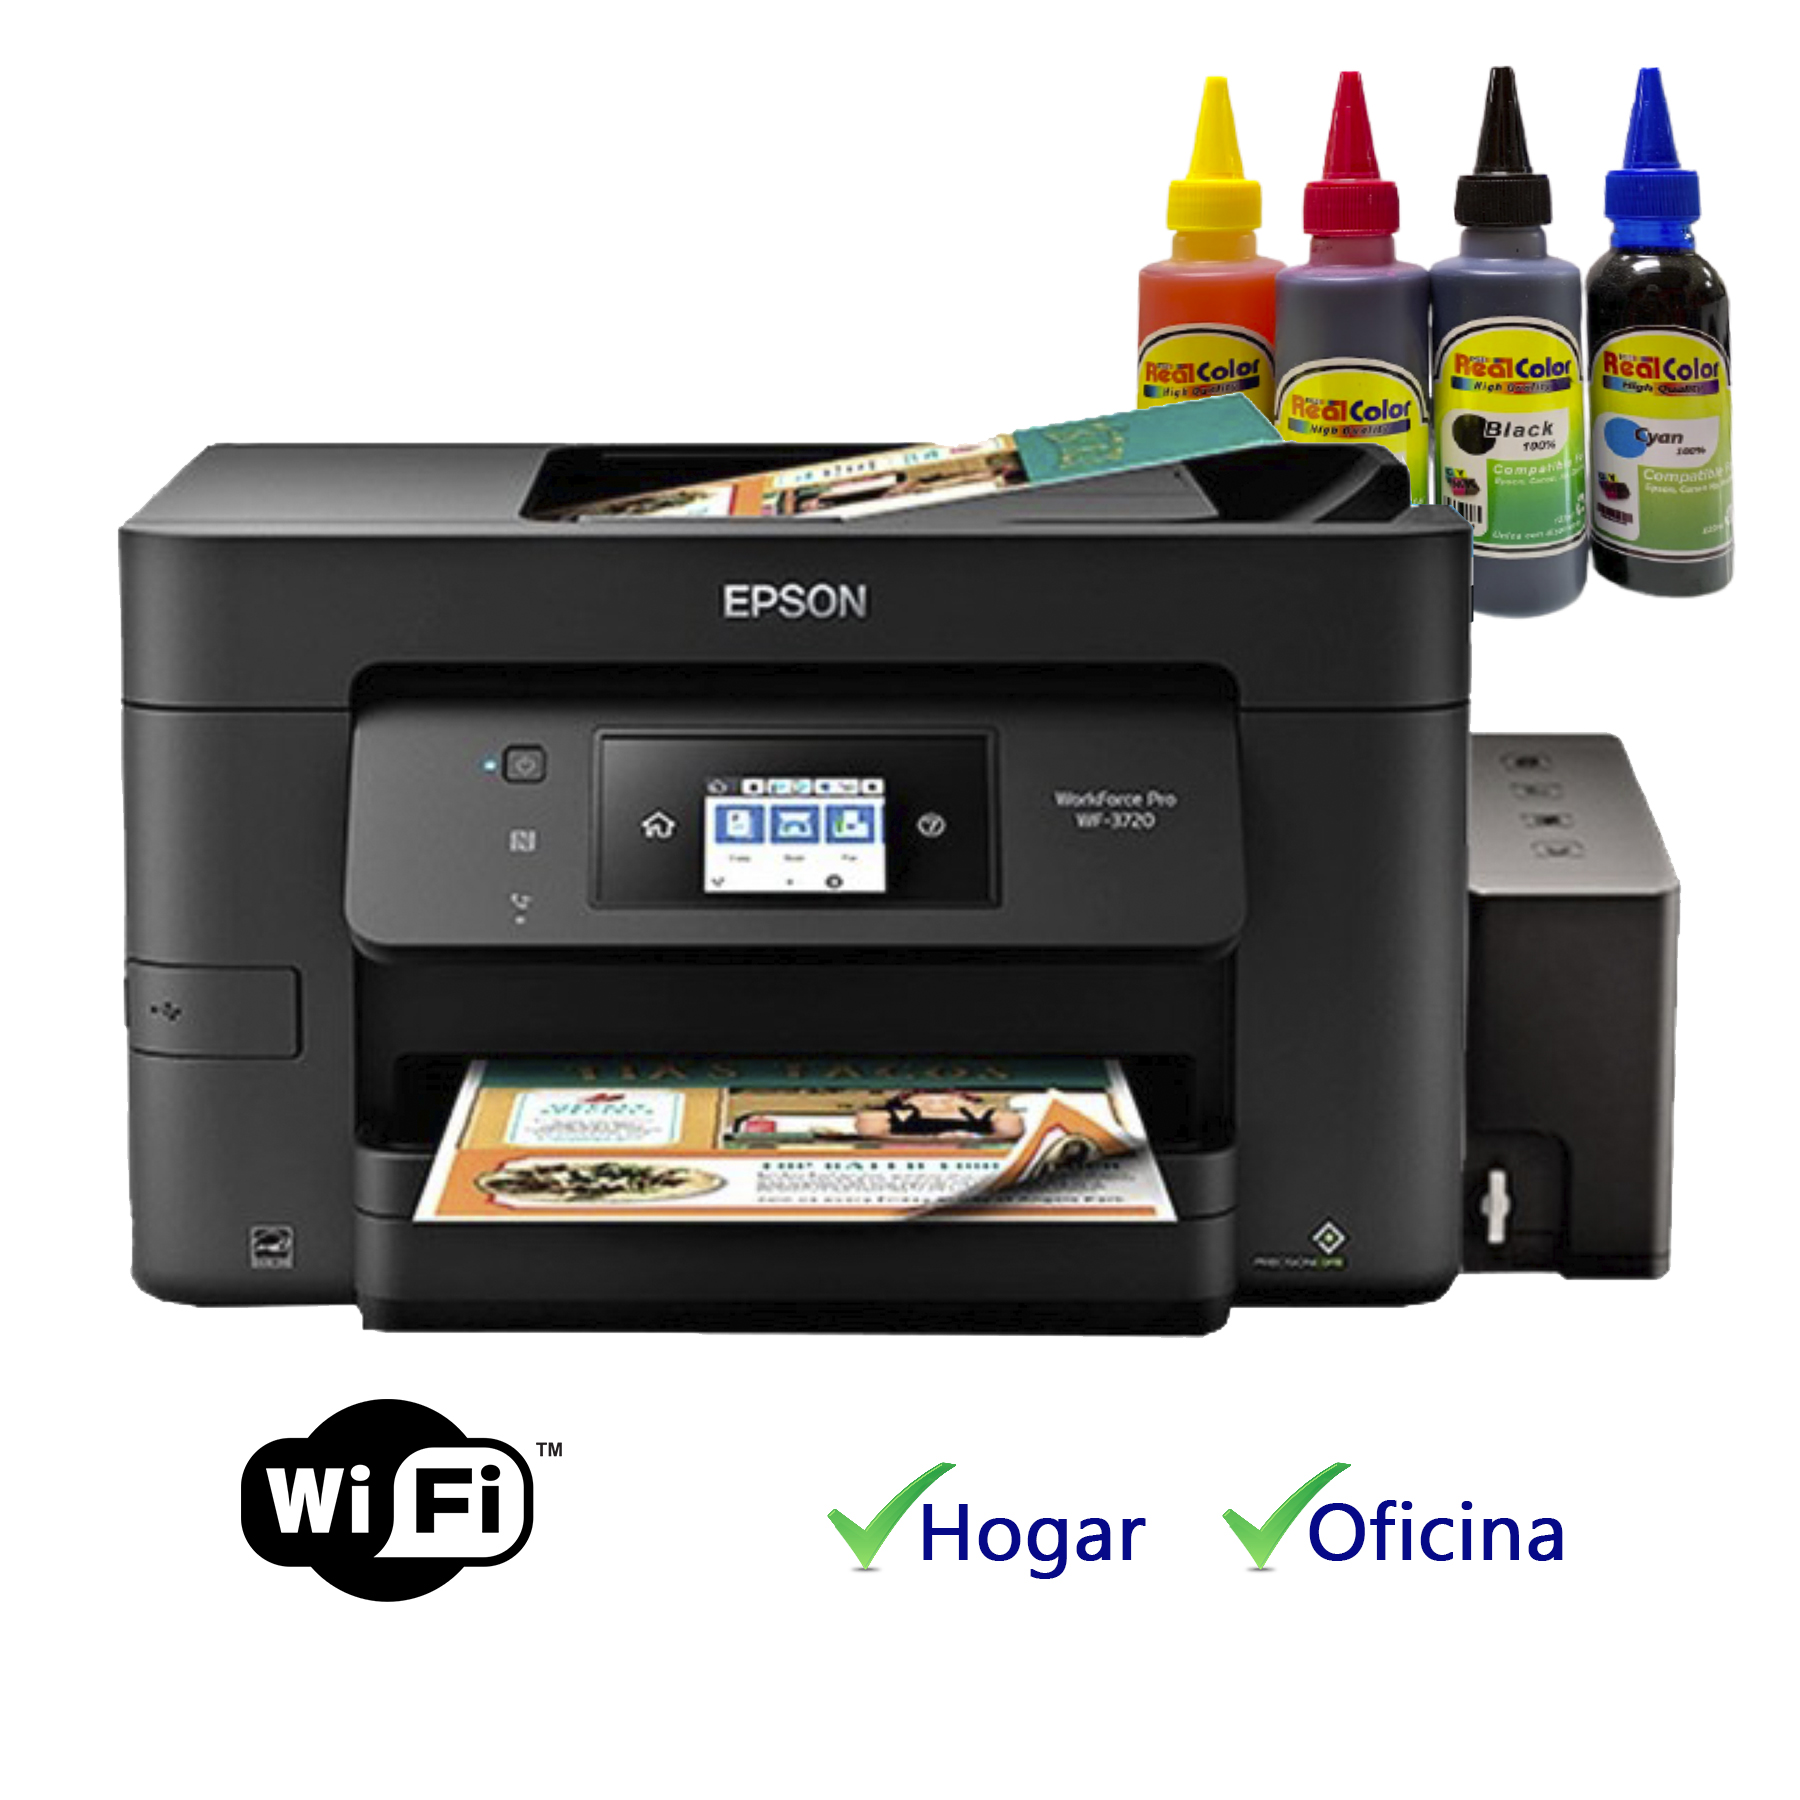 Printer Epson Wf-3720 + Sistema Tinta  Real Color